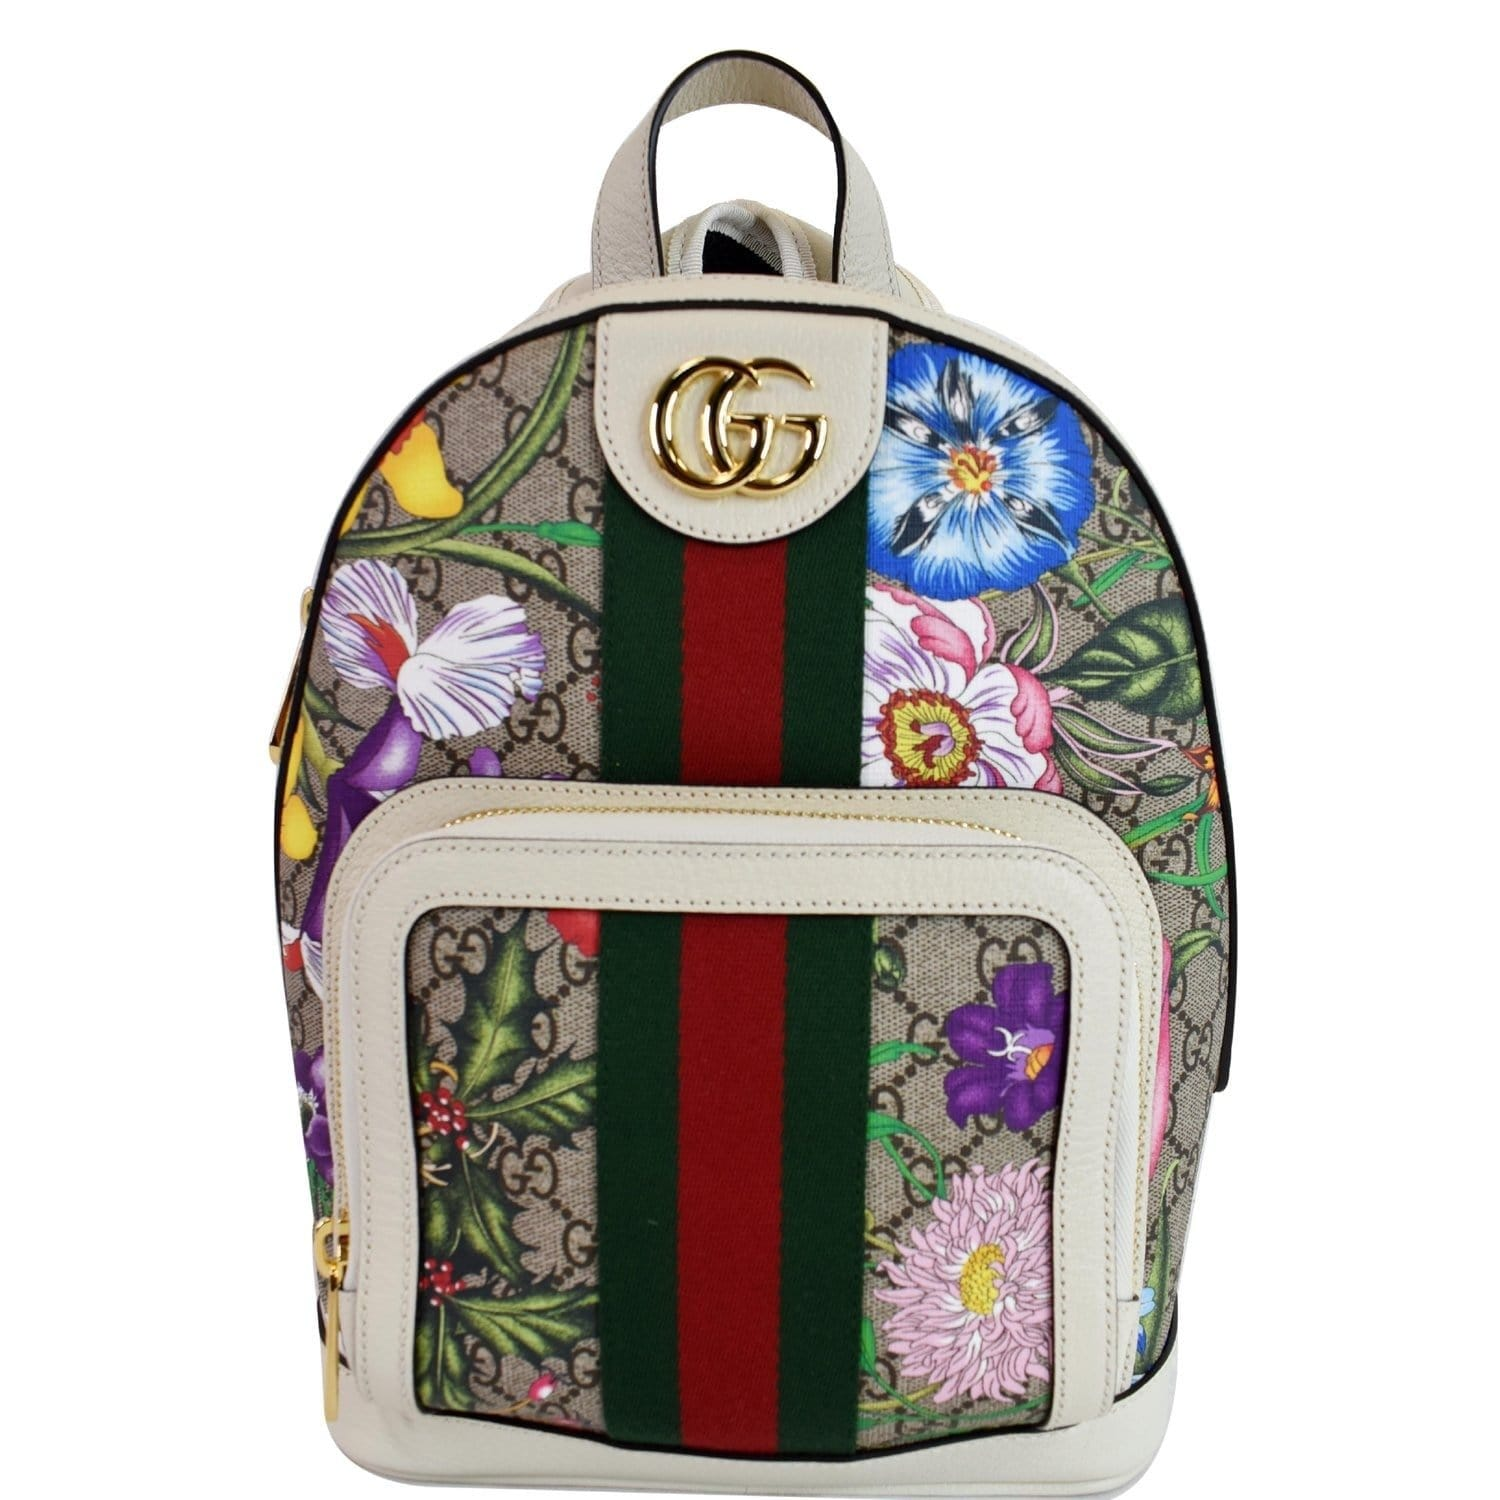 GUCCI Ophidia GG Flora Small Supreme Canvas Backpack Bag Beige 547965